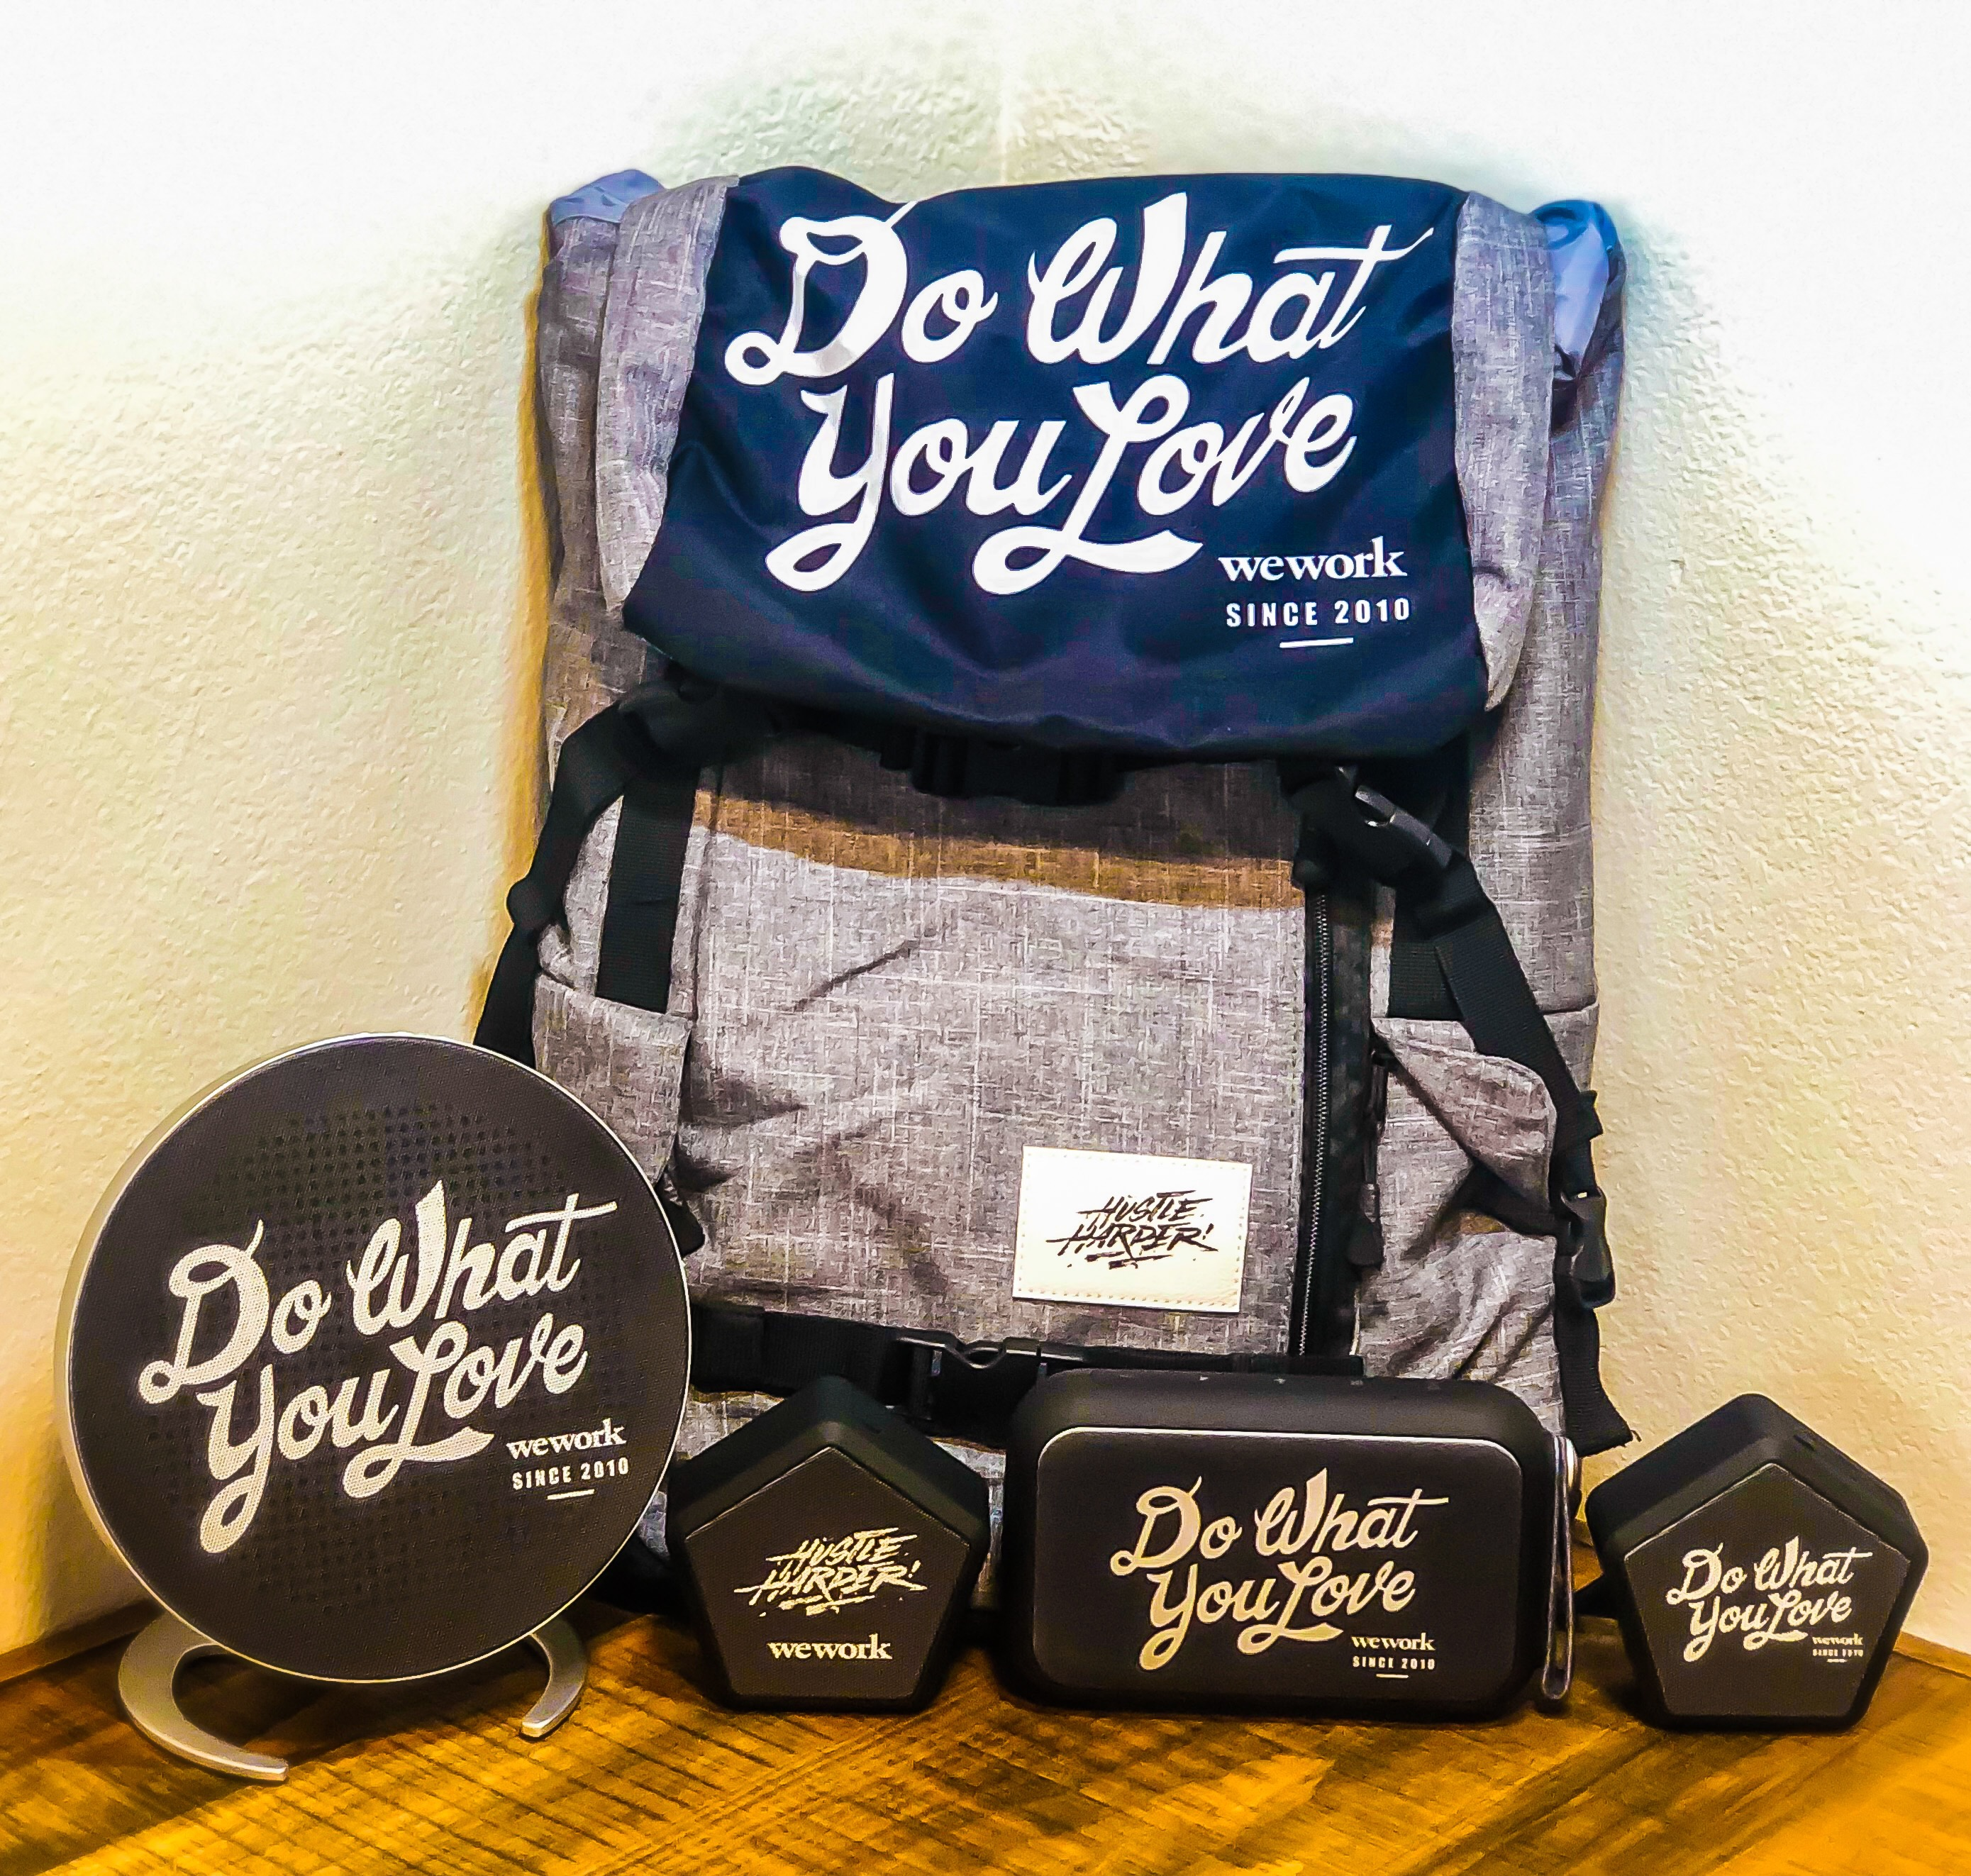 Company Swag Pack for Do What You Want